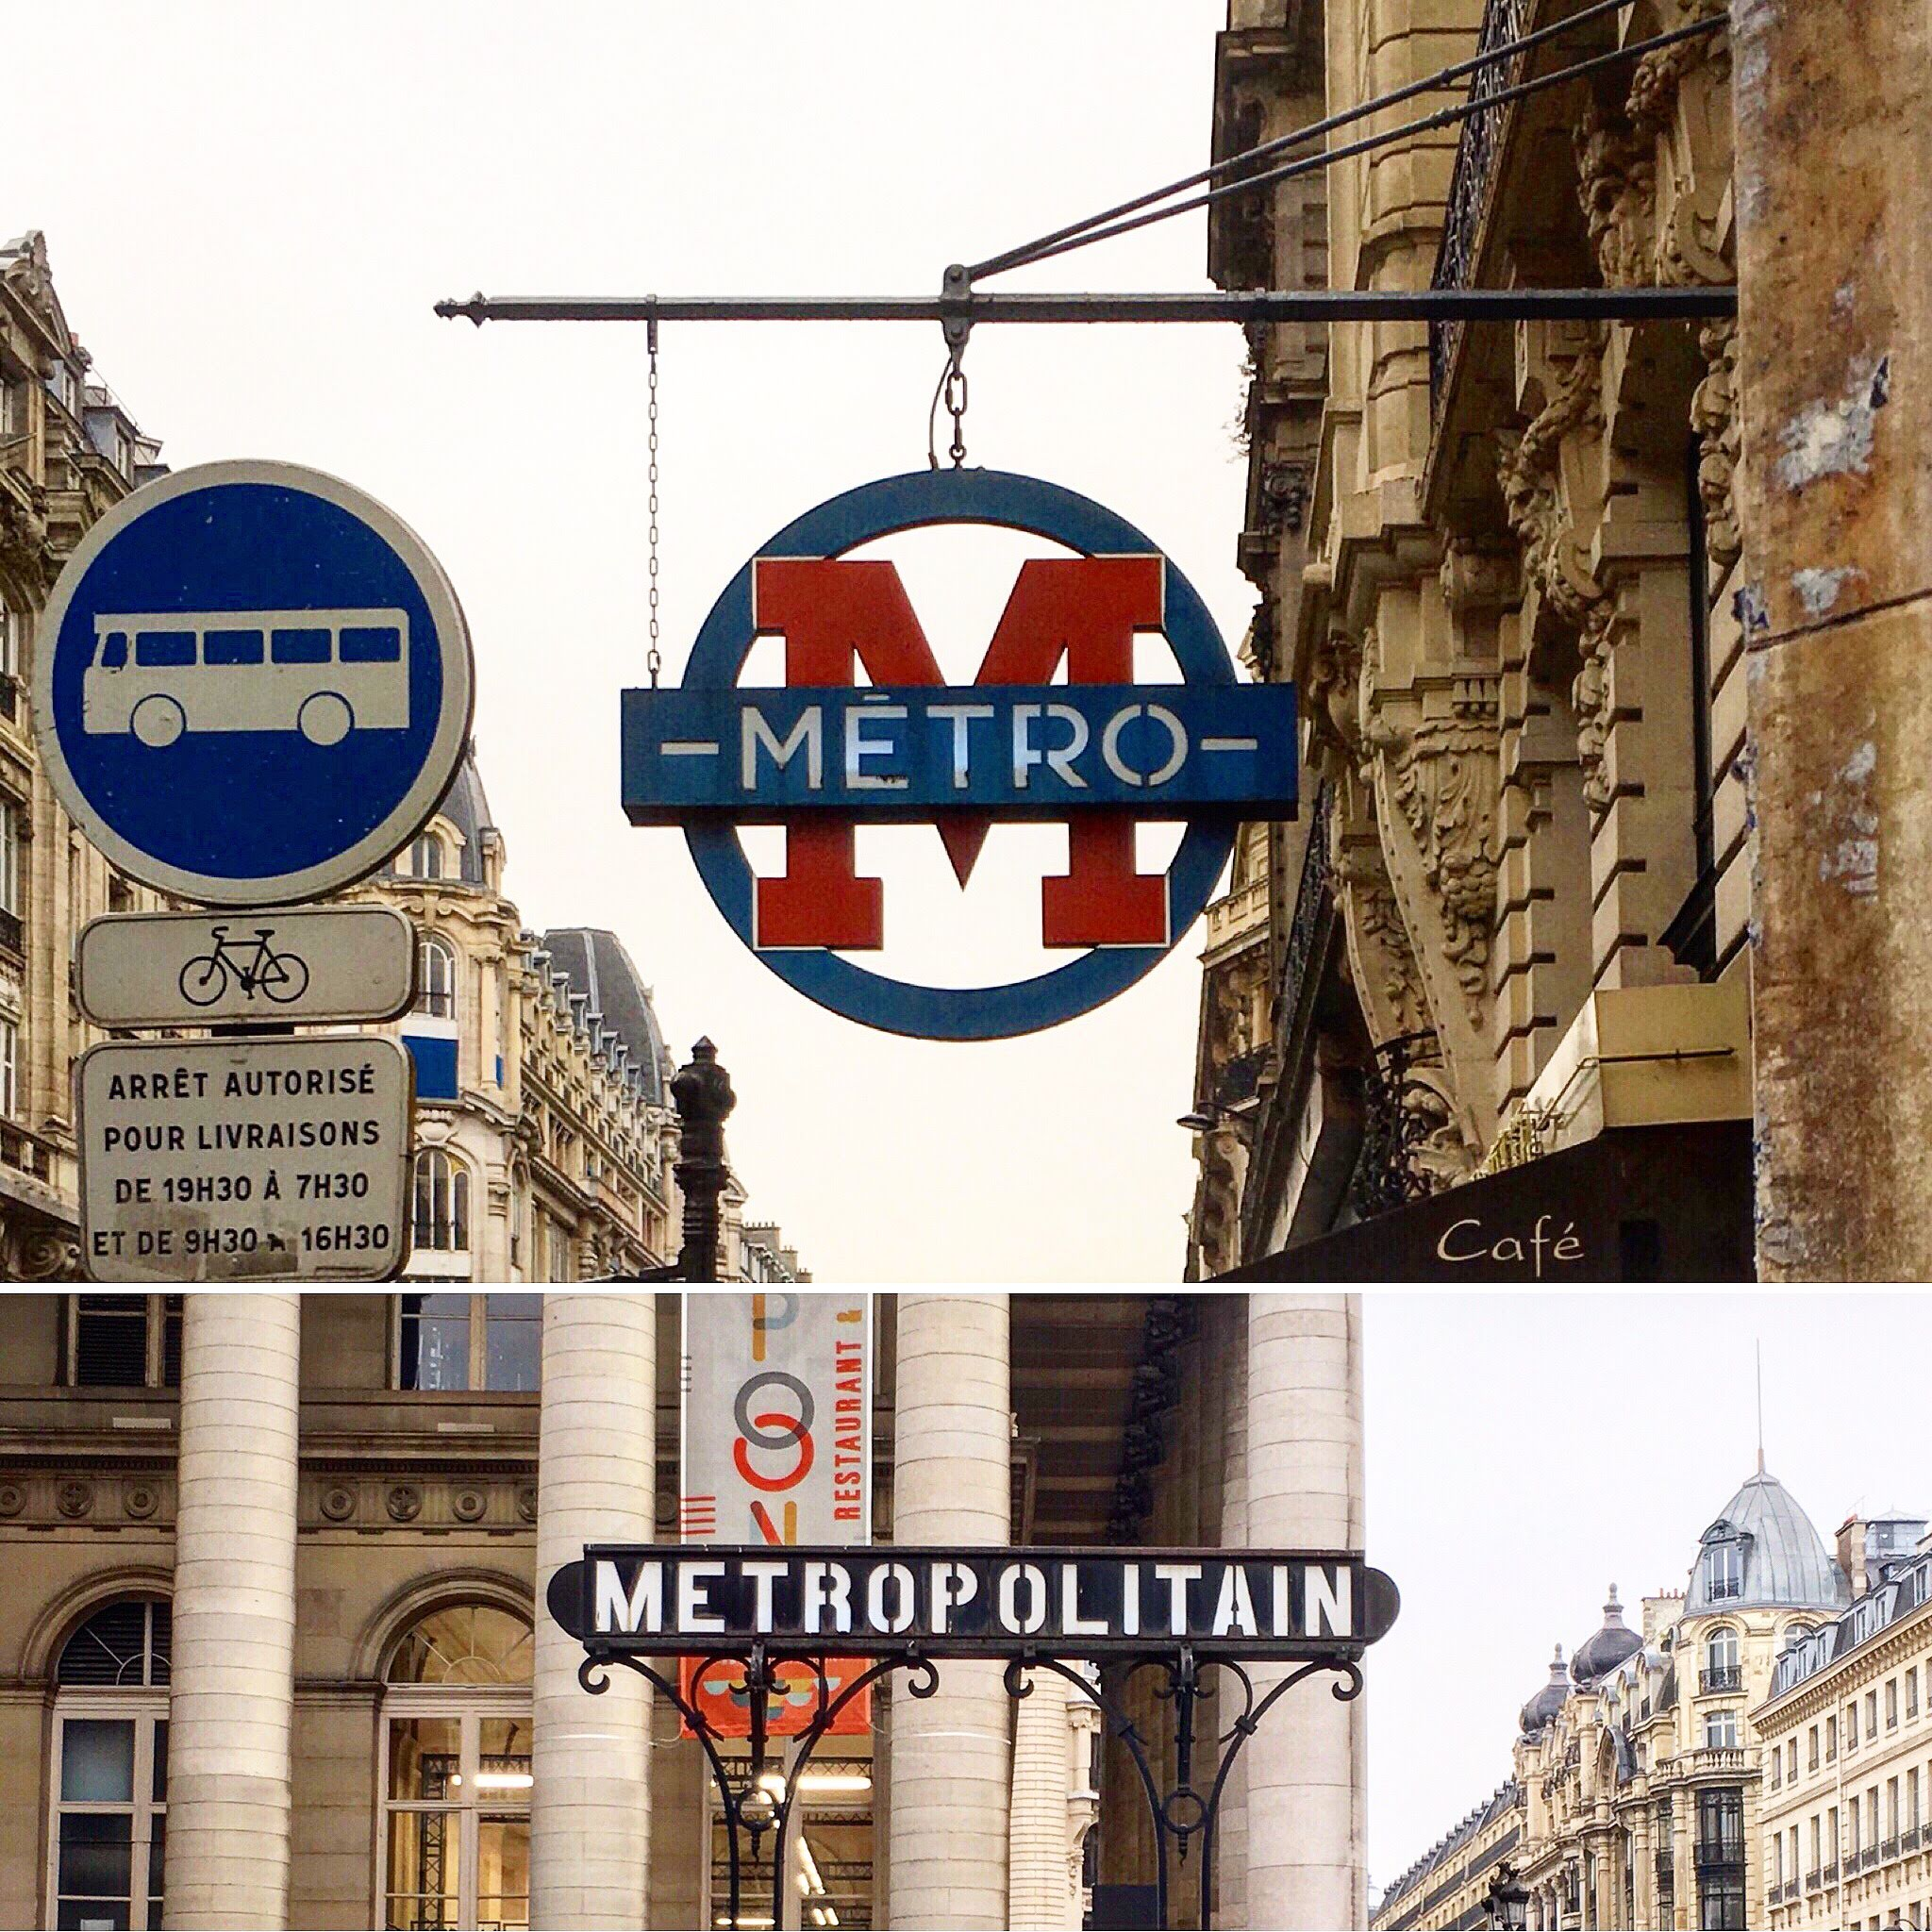 Some unique metro signs I spotted - especially love the top one!